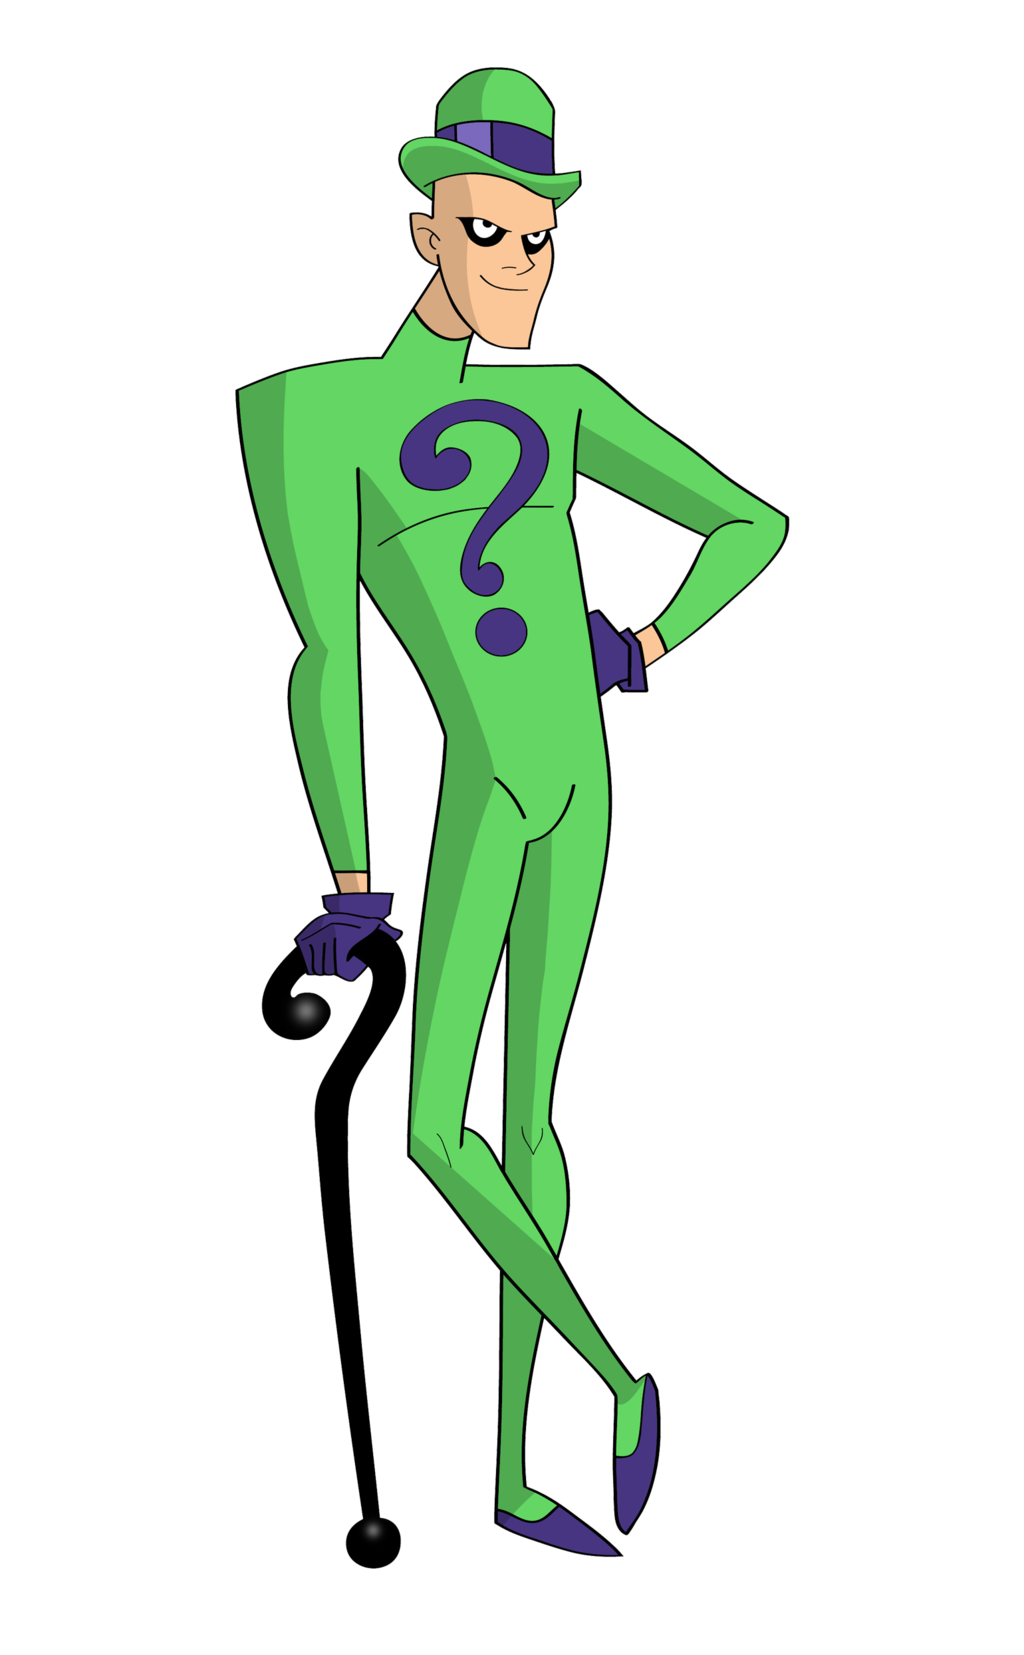 Joker clipart riddler #4